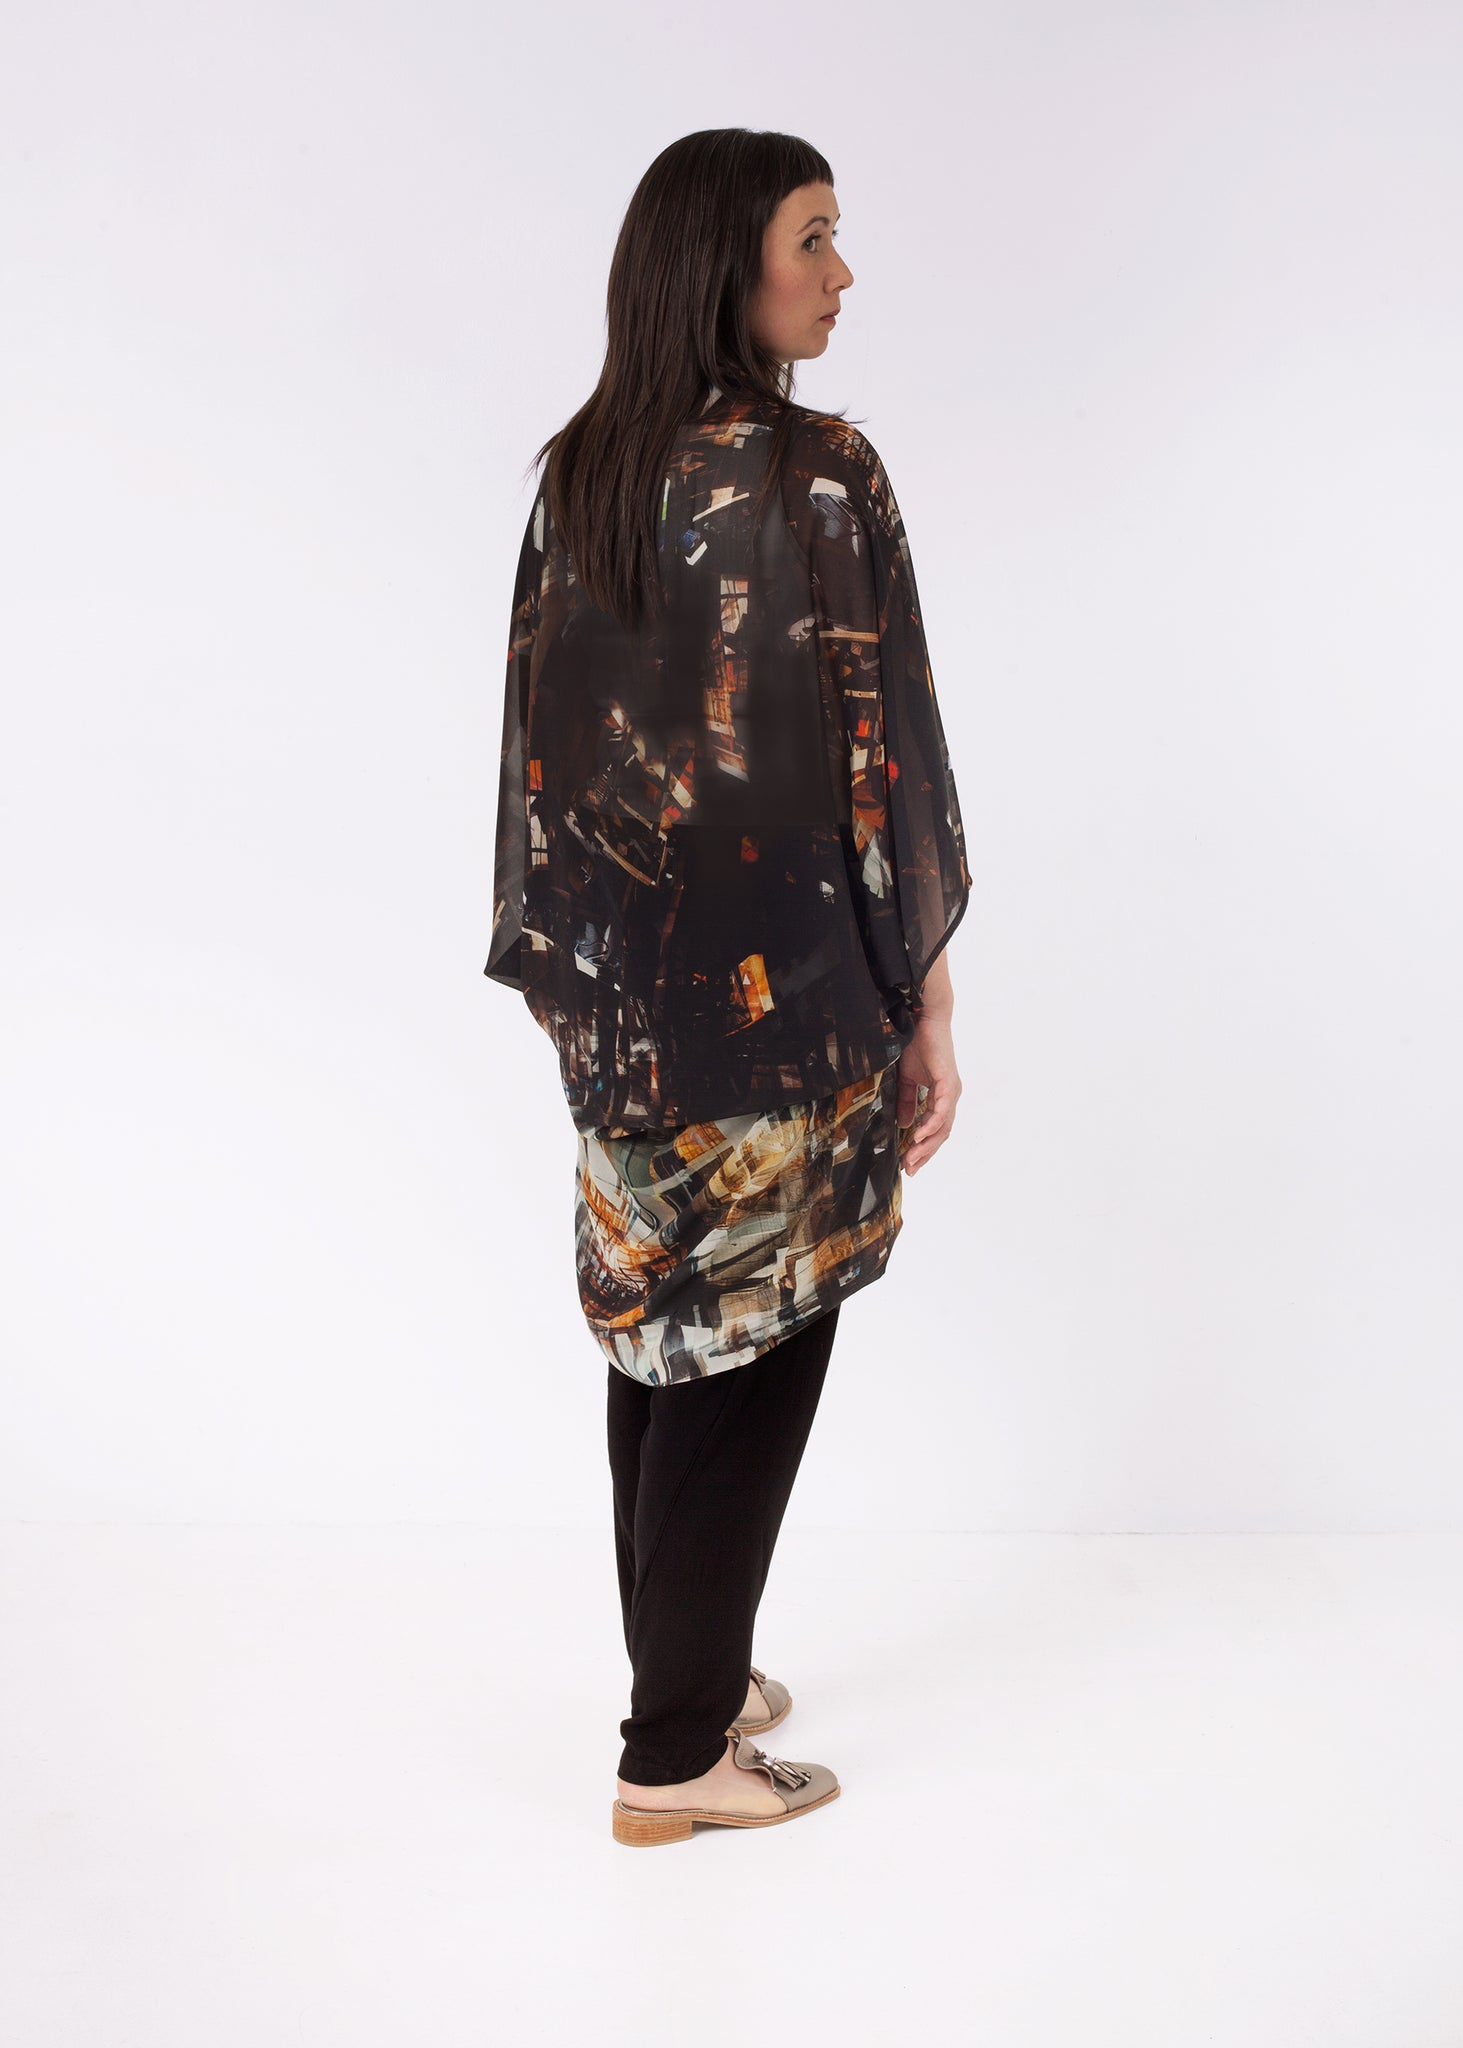 Featherweight Kimono Constructing Chaos Brown, ethical fashion, sustainable fashion, designer clothes, plus size clothing, textile print clothing, luxury online fashion, slow fashion